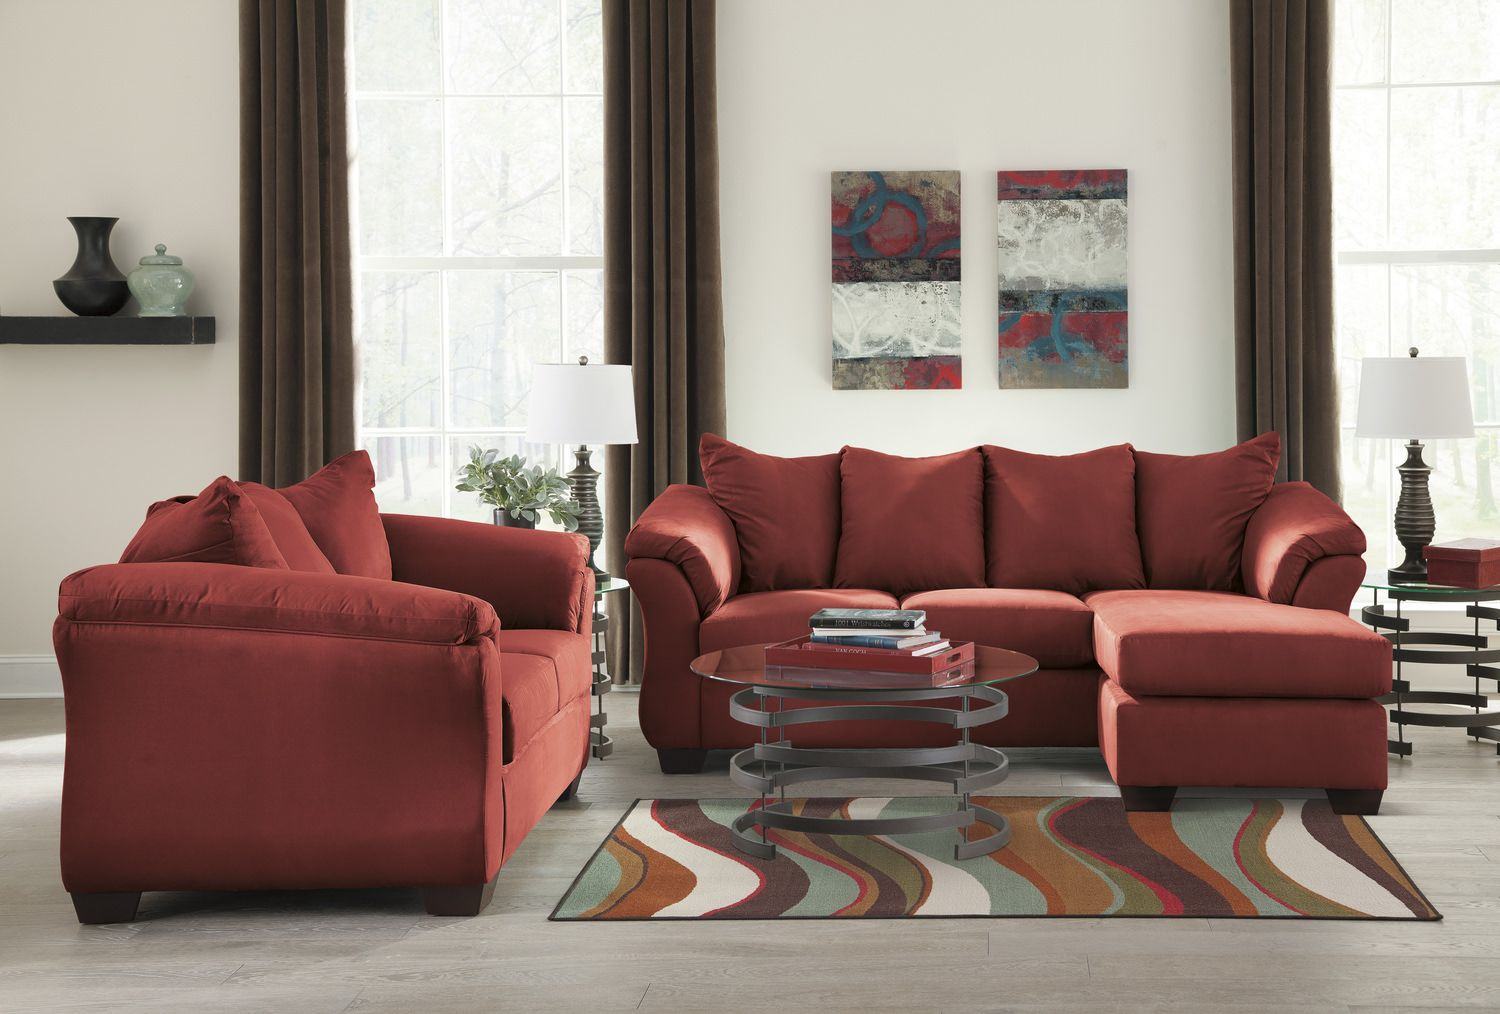 Almath Sofa With Reversible Chaise | HOM Furniture | Furniture Stores In Minneapolis  Minnesota U0026 Midwest